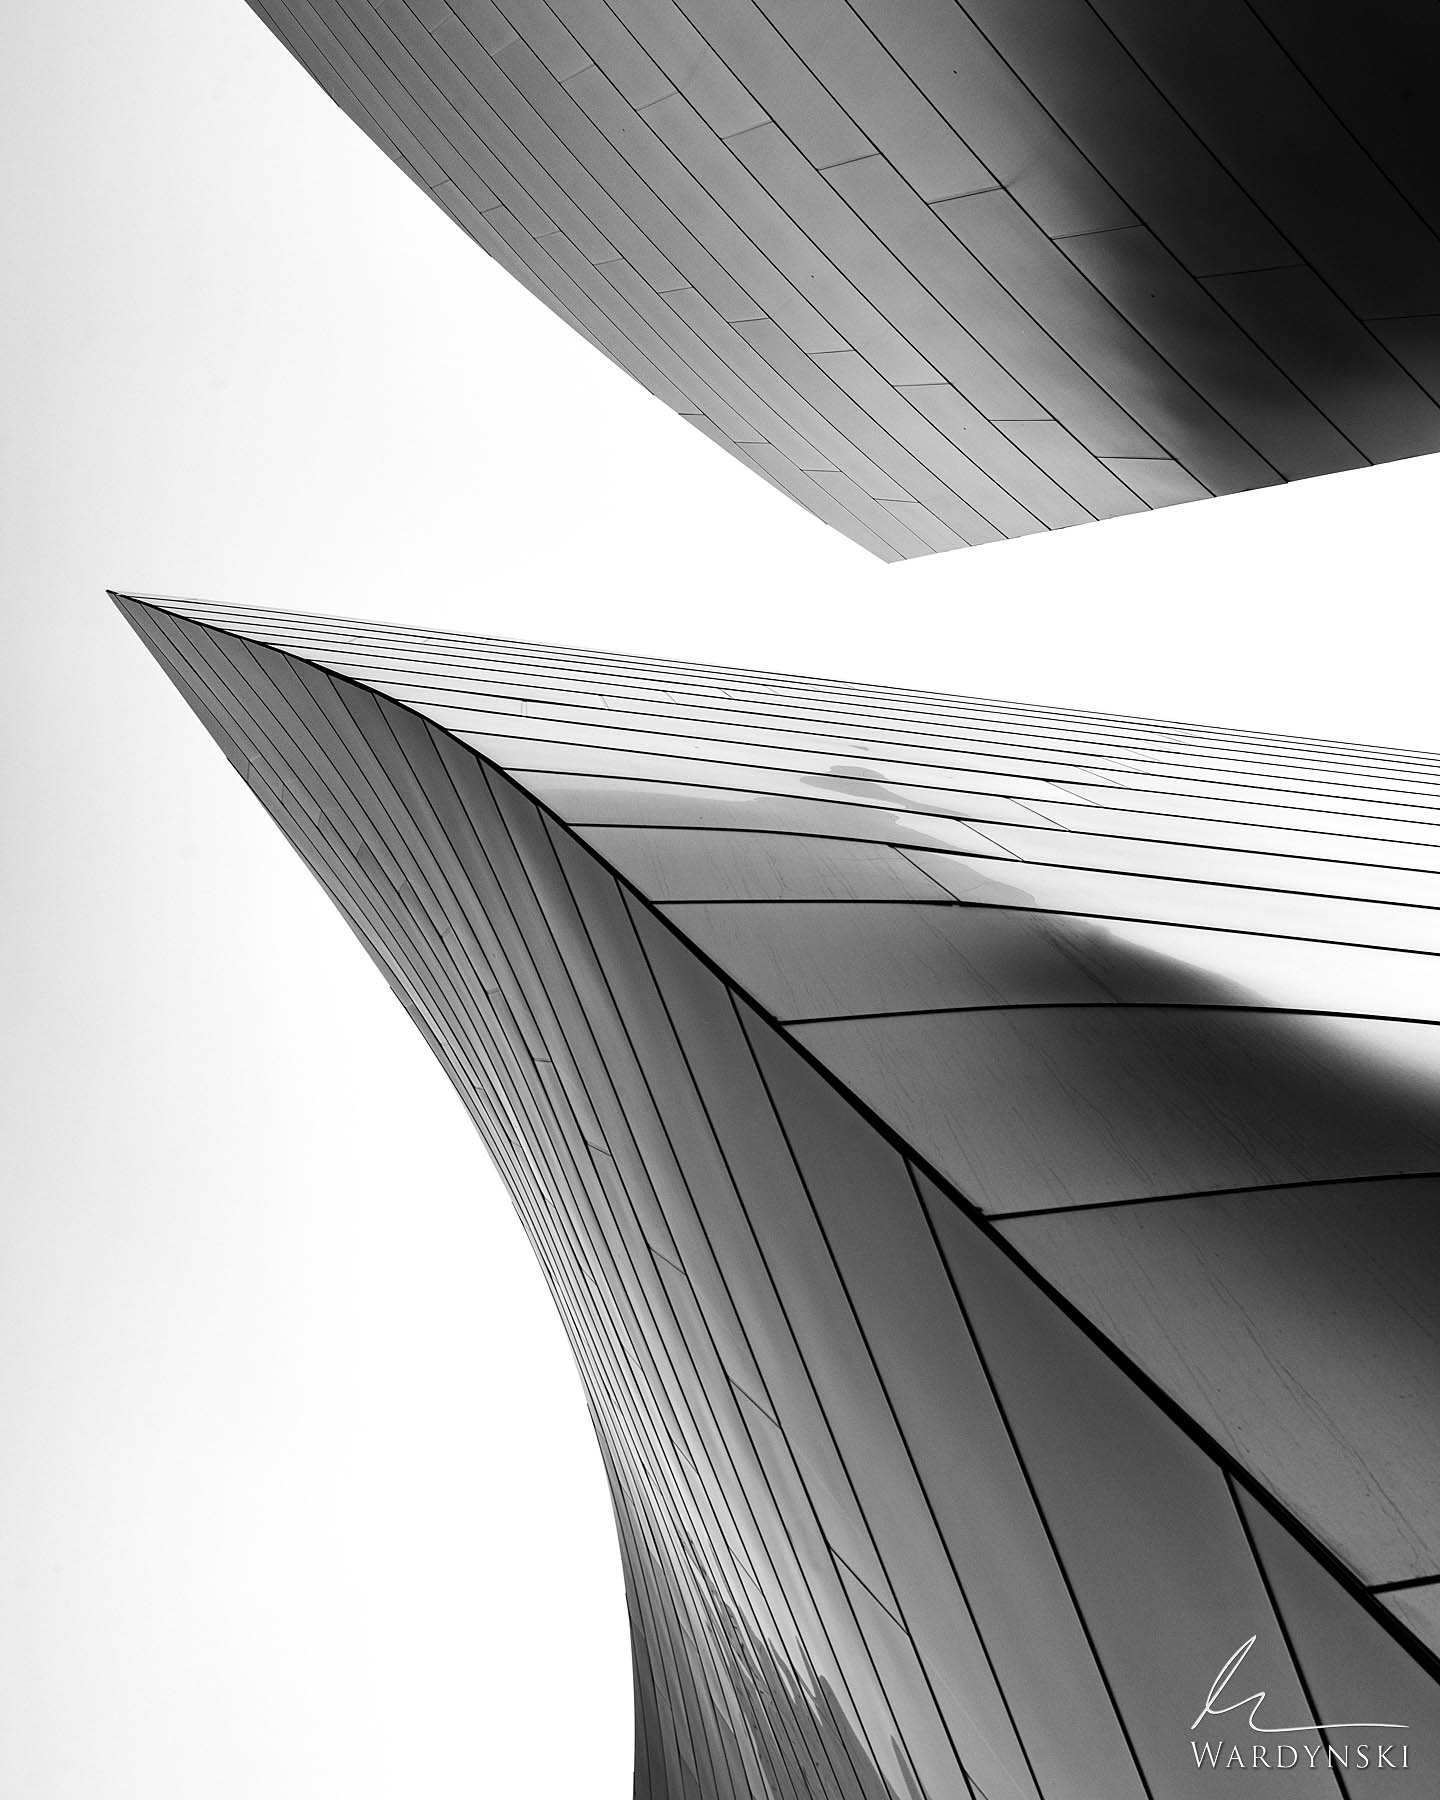 Black and White Fine Art Print | Limited Edition of 35  The large metal fins of the Walt Disney Concert Hall in downtown Los...